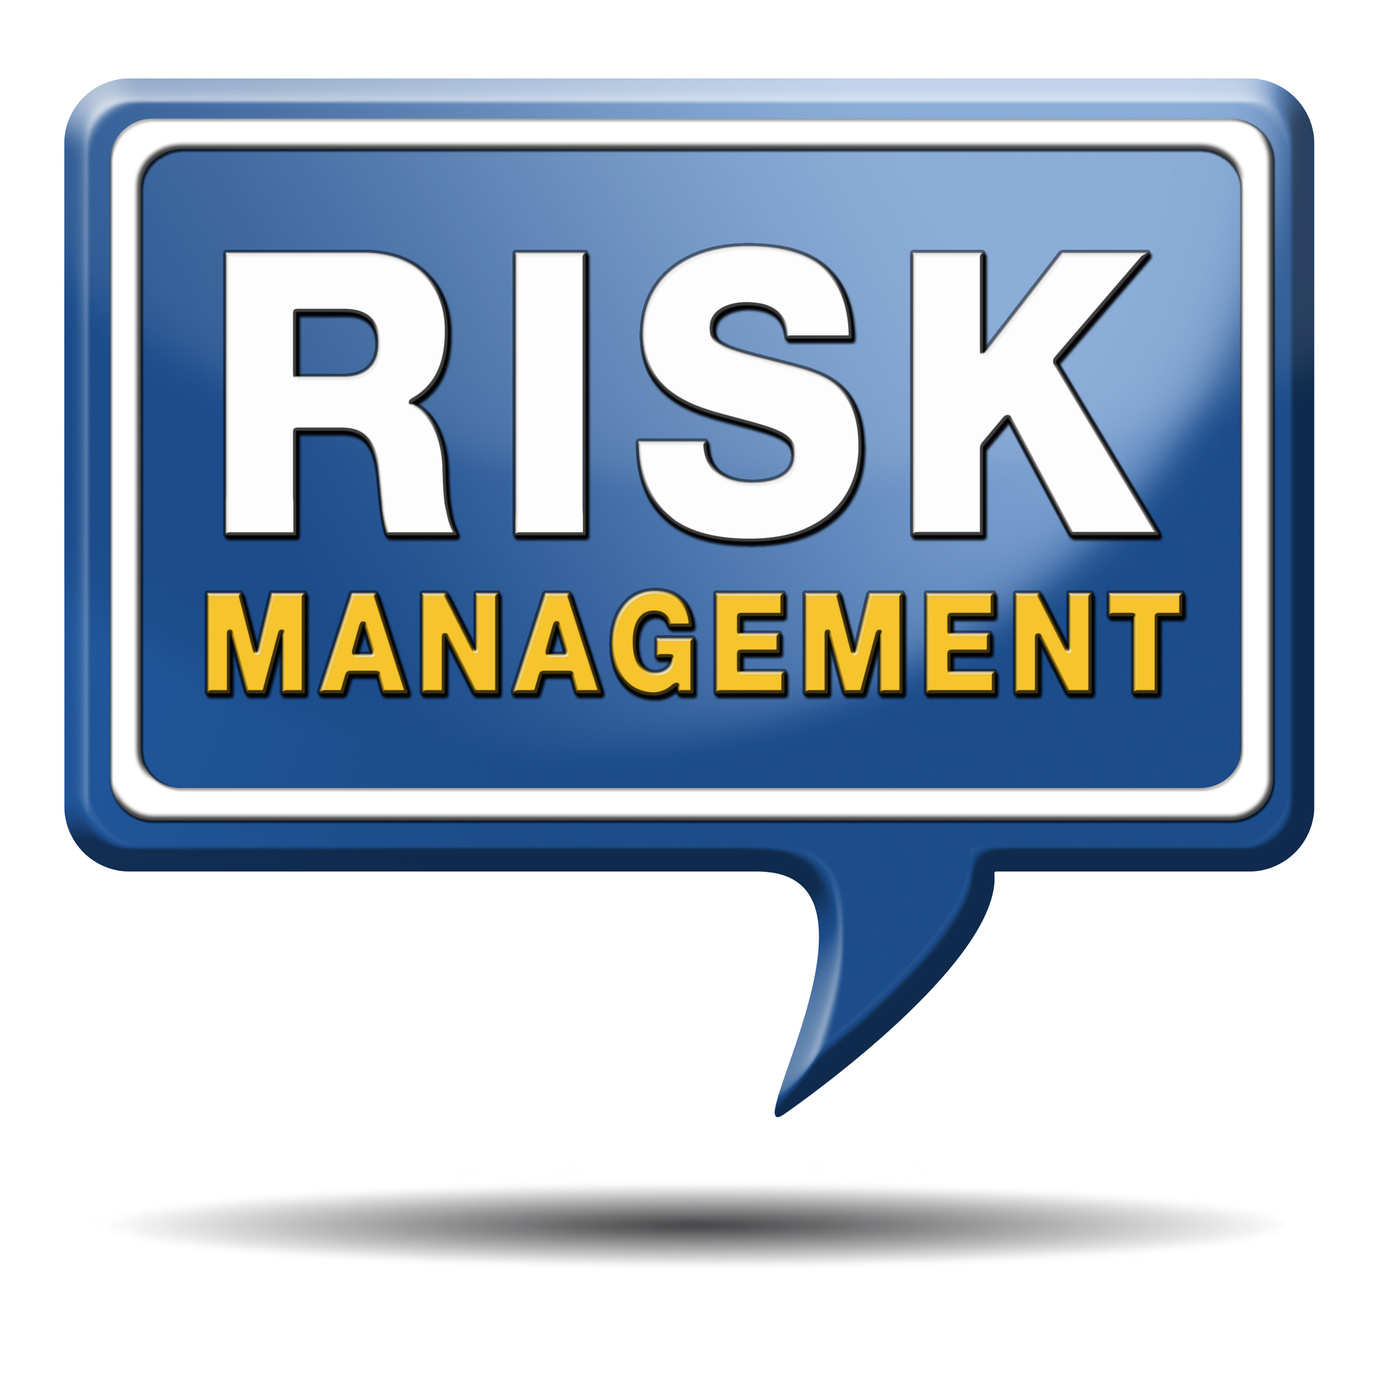 Financial Planning | Risk Management | Wiseradvisor.com